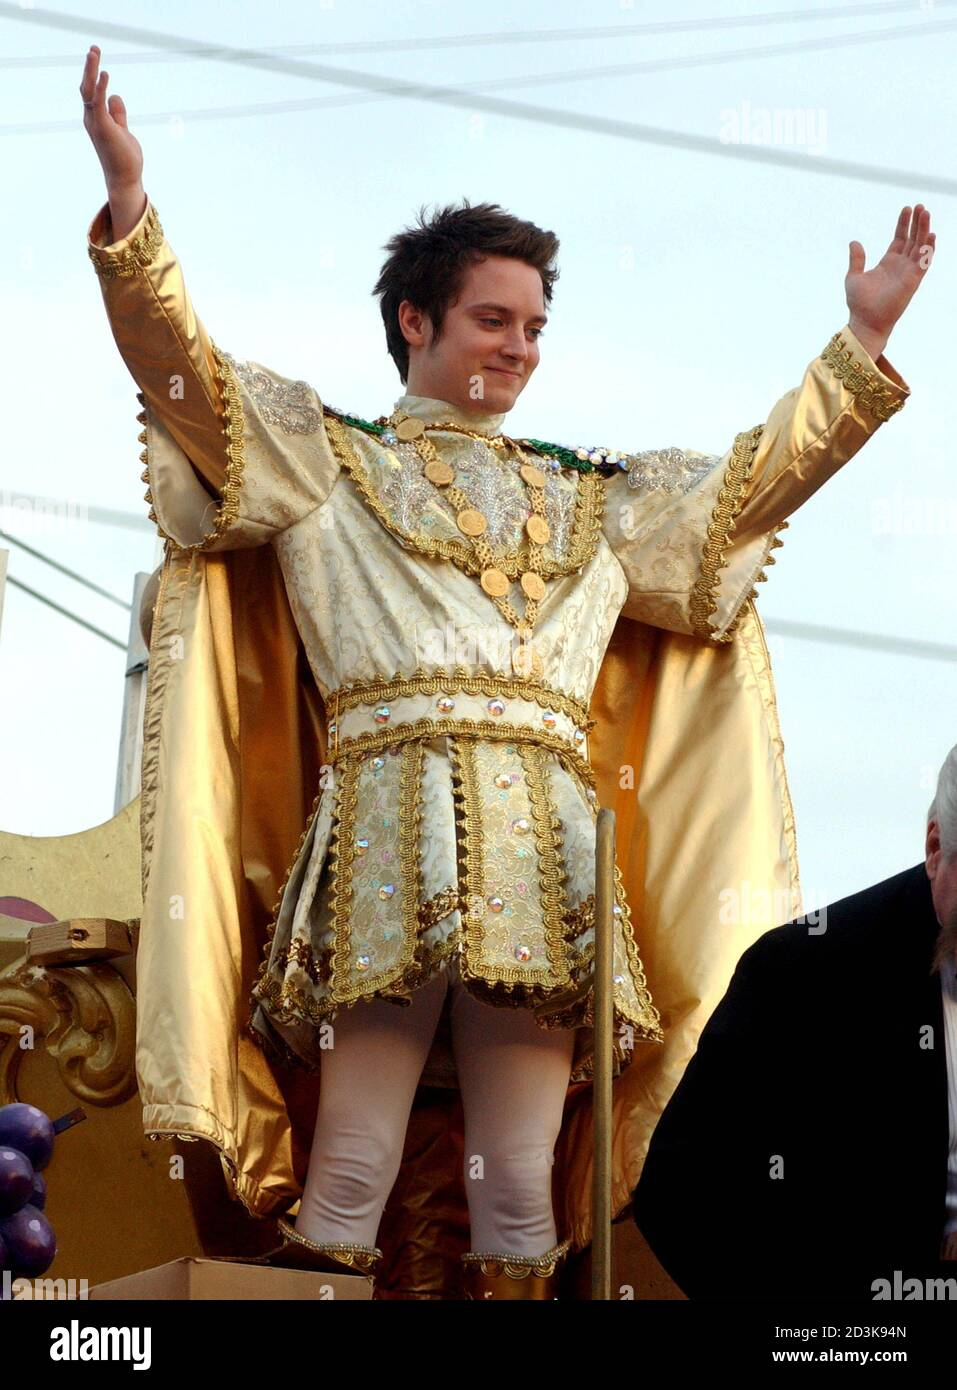 Actor Elijah Wood reigns as Bacchus XXXVI during the Krewe of Bacchus Parade in Uptown New Orleans February 22, 2004. Fat Tuesday is February 24. REUTERS/David Rae Morris  DRM/JDP Stock Photo